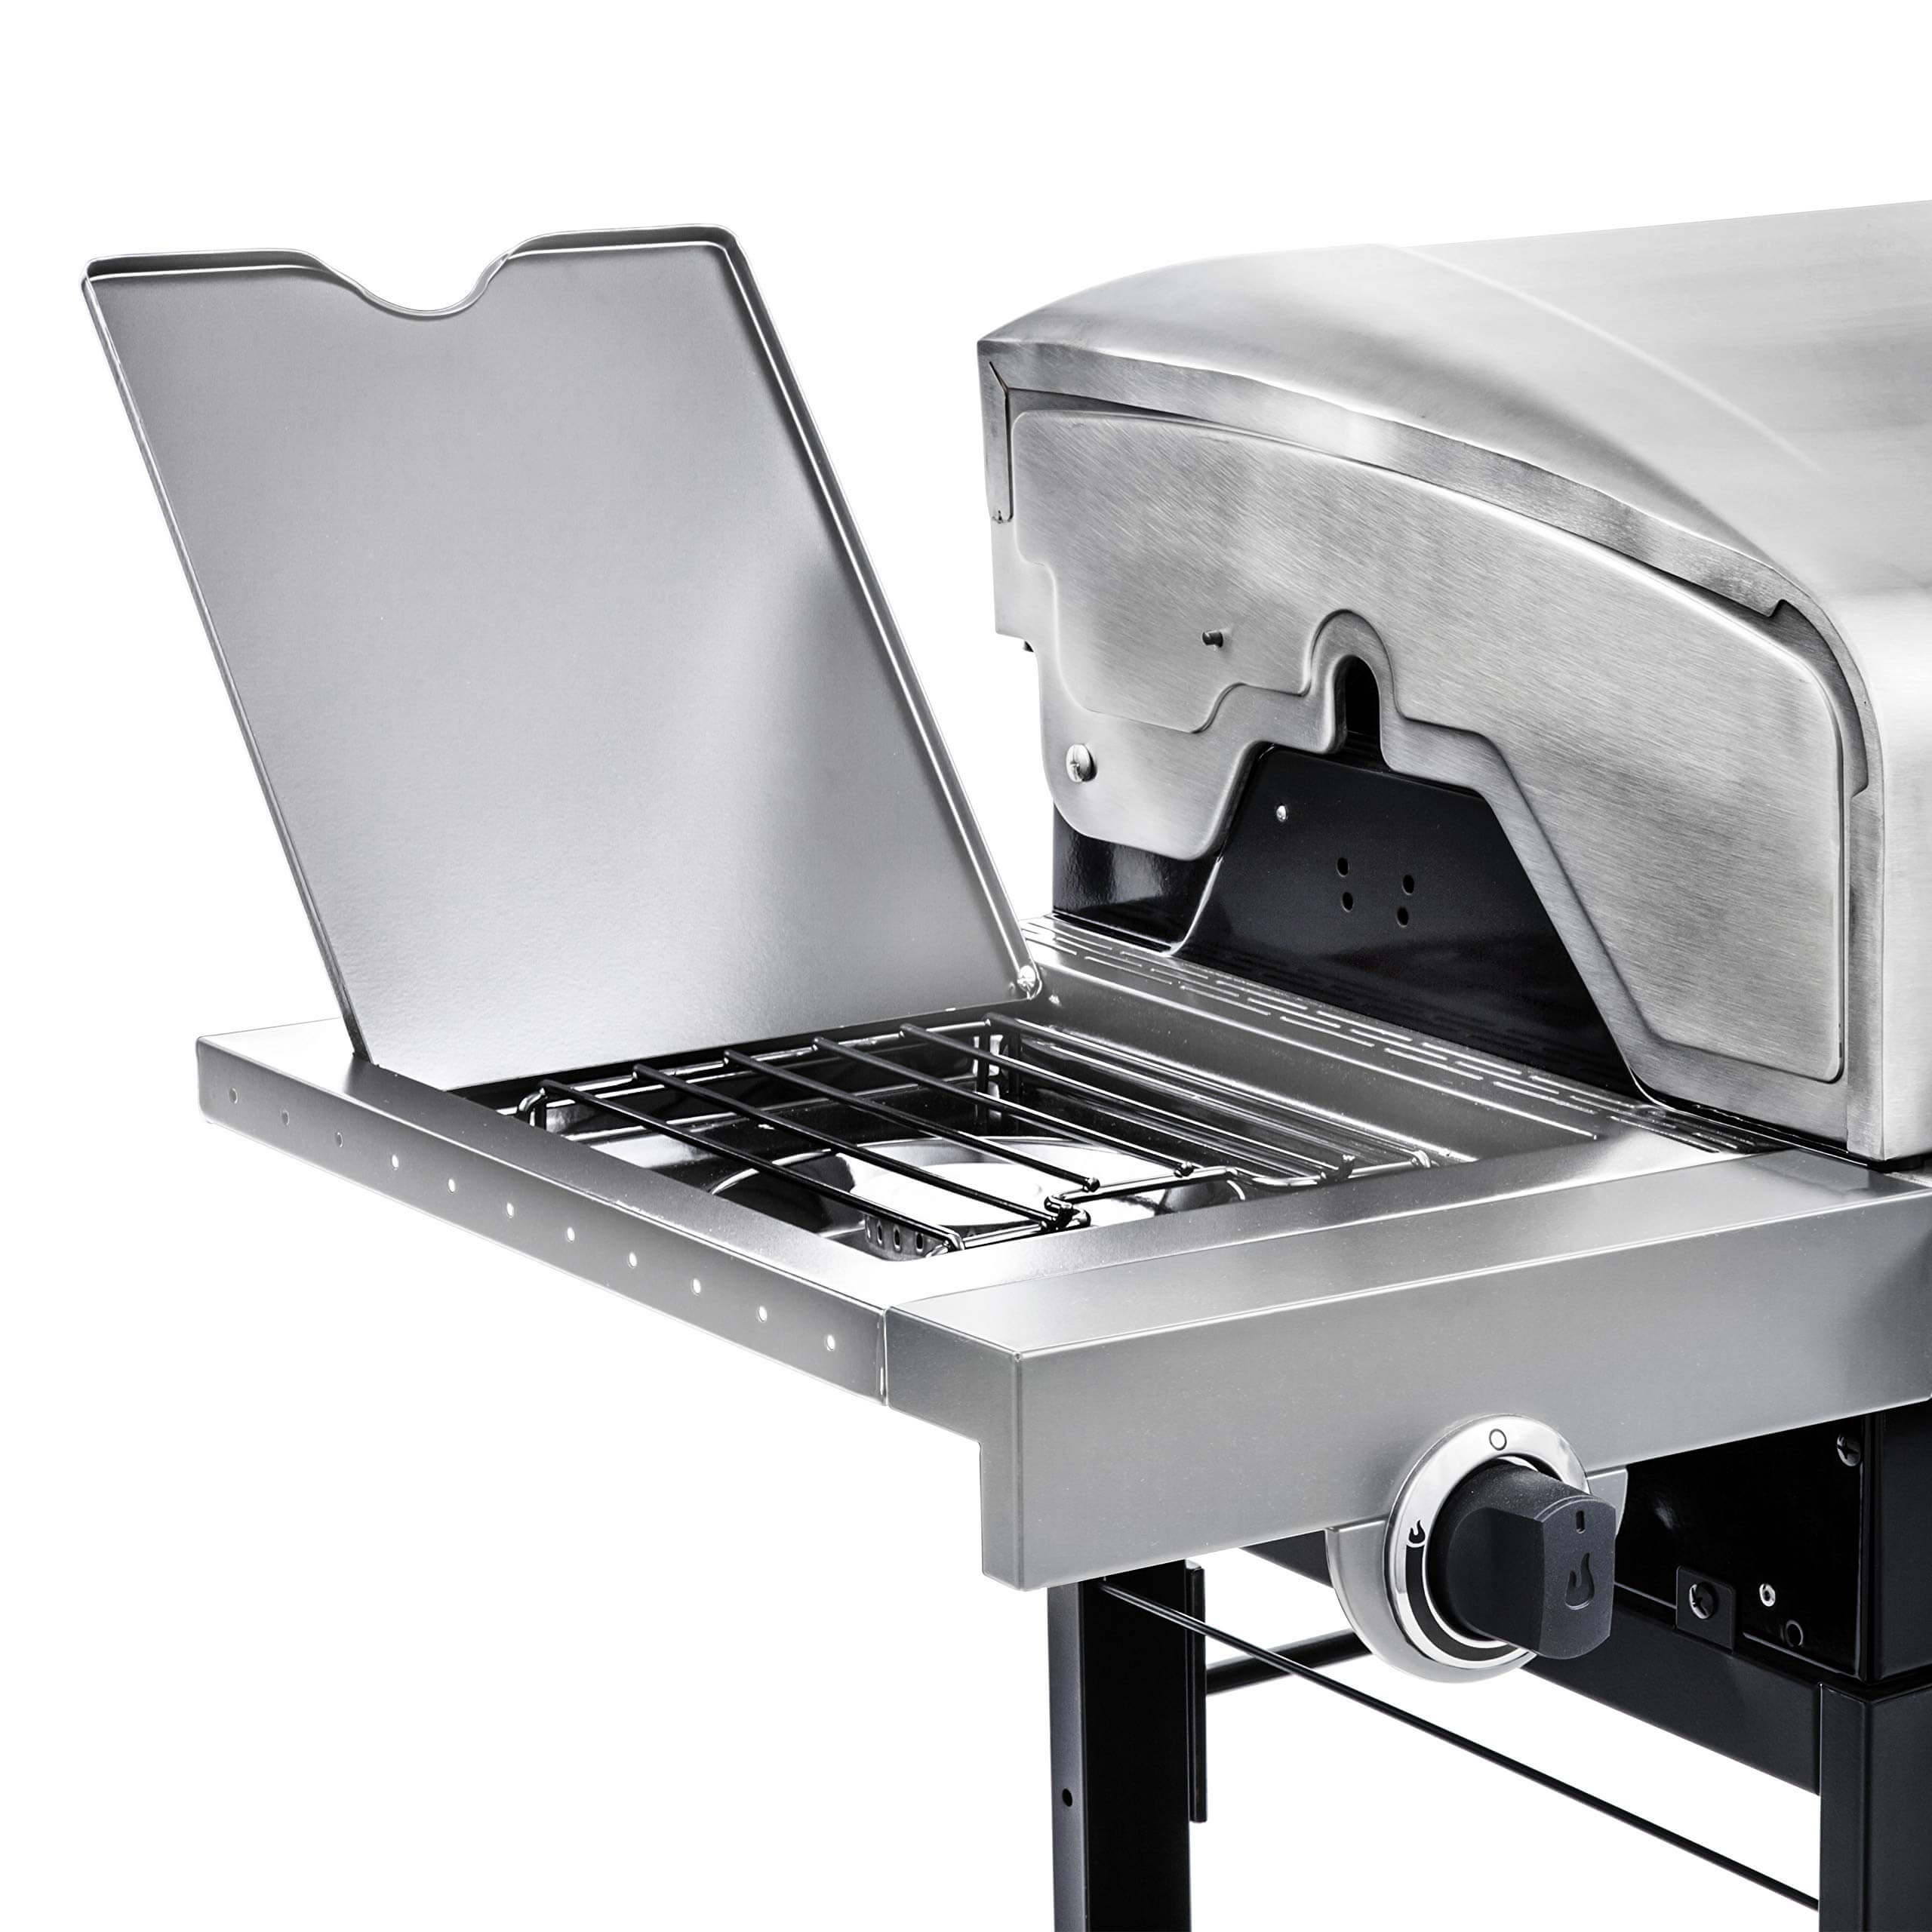 char broil 4 burner gas grill reviews, best gas grills under 500